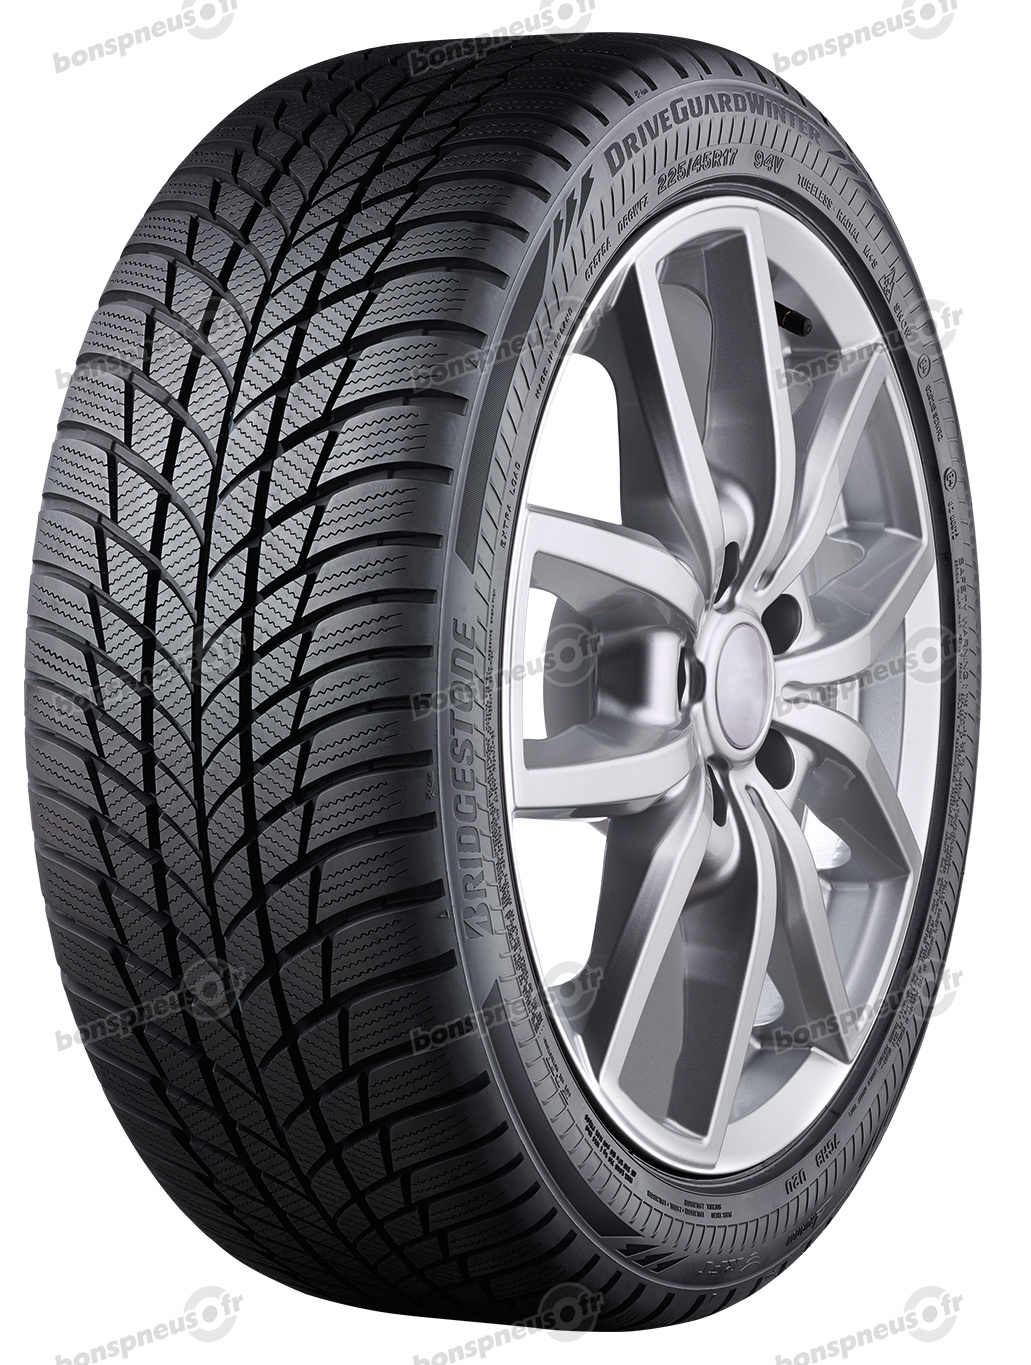 195/65 R15 95H DriveGuard Winter RFT XL  DriveGuard Winter RFT XL